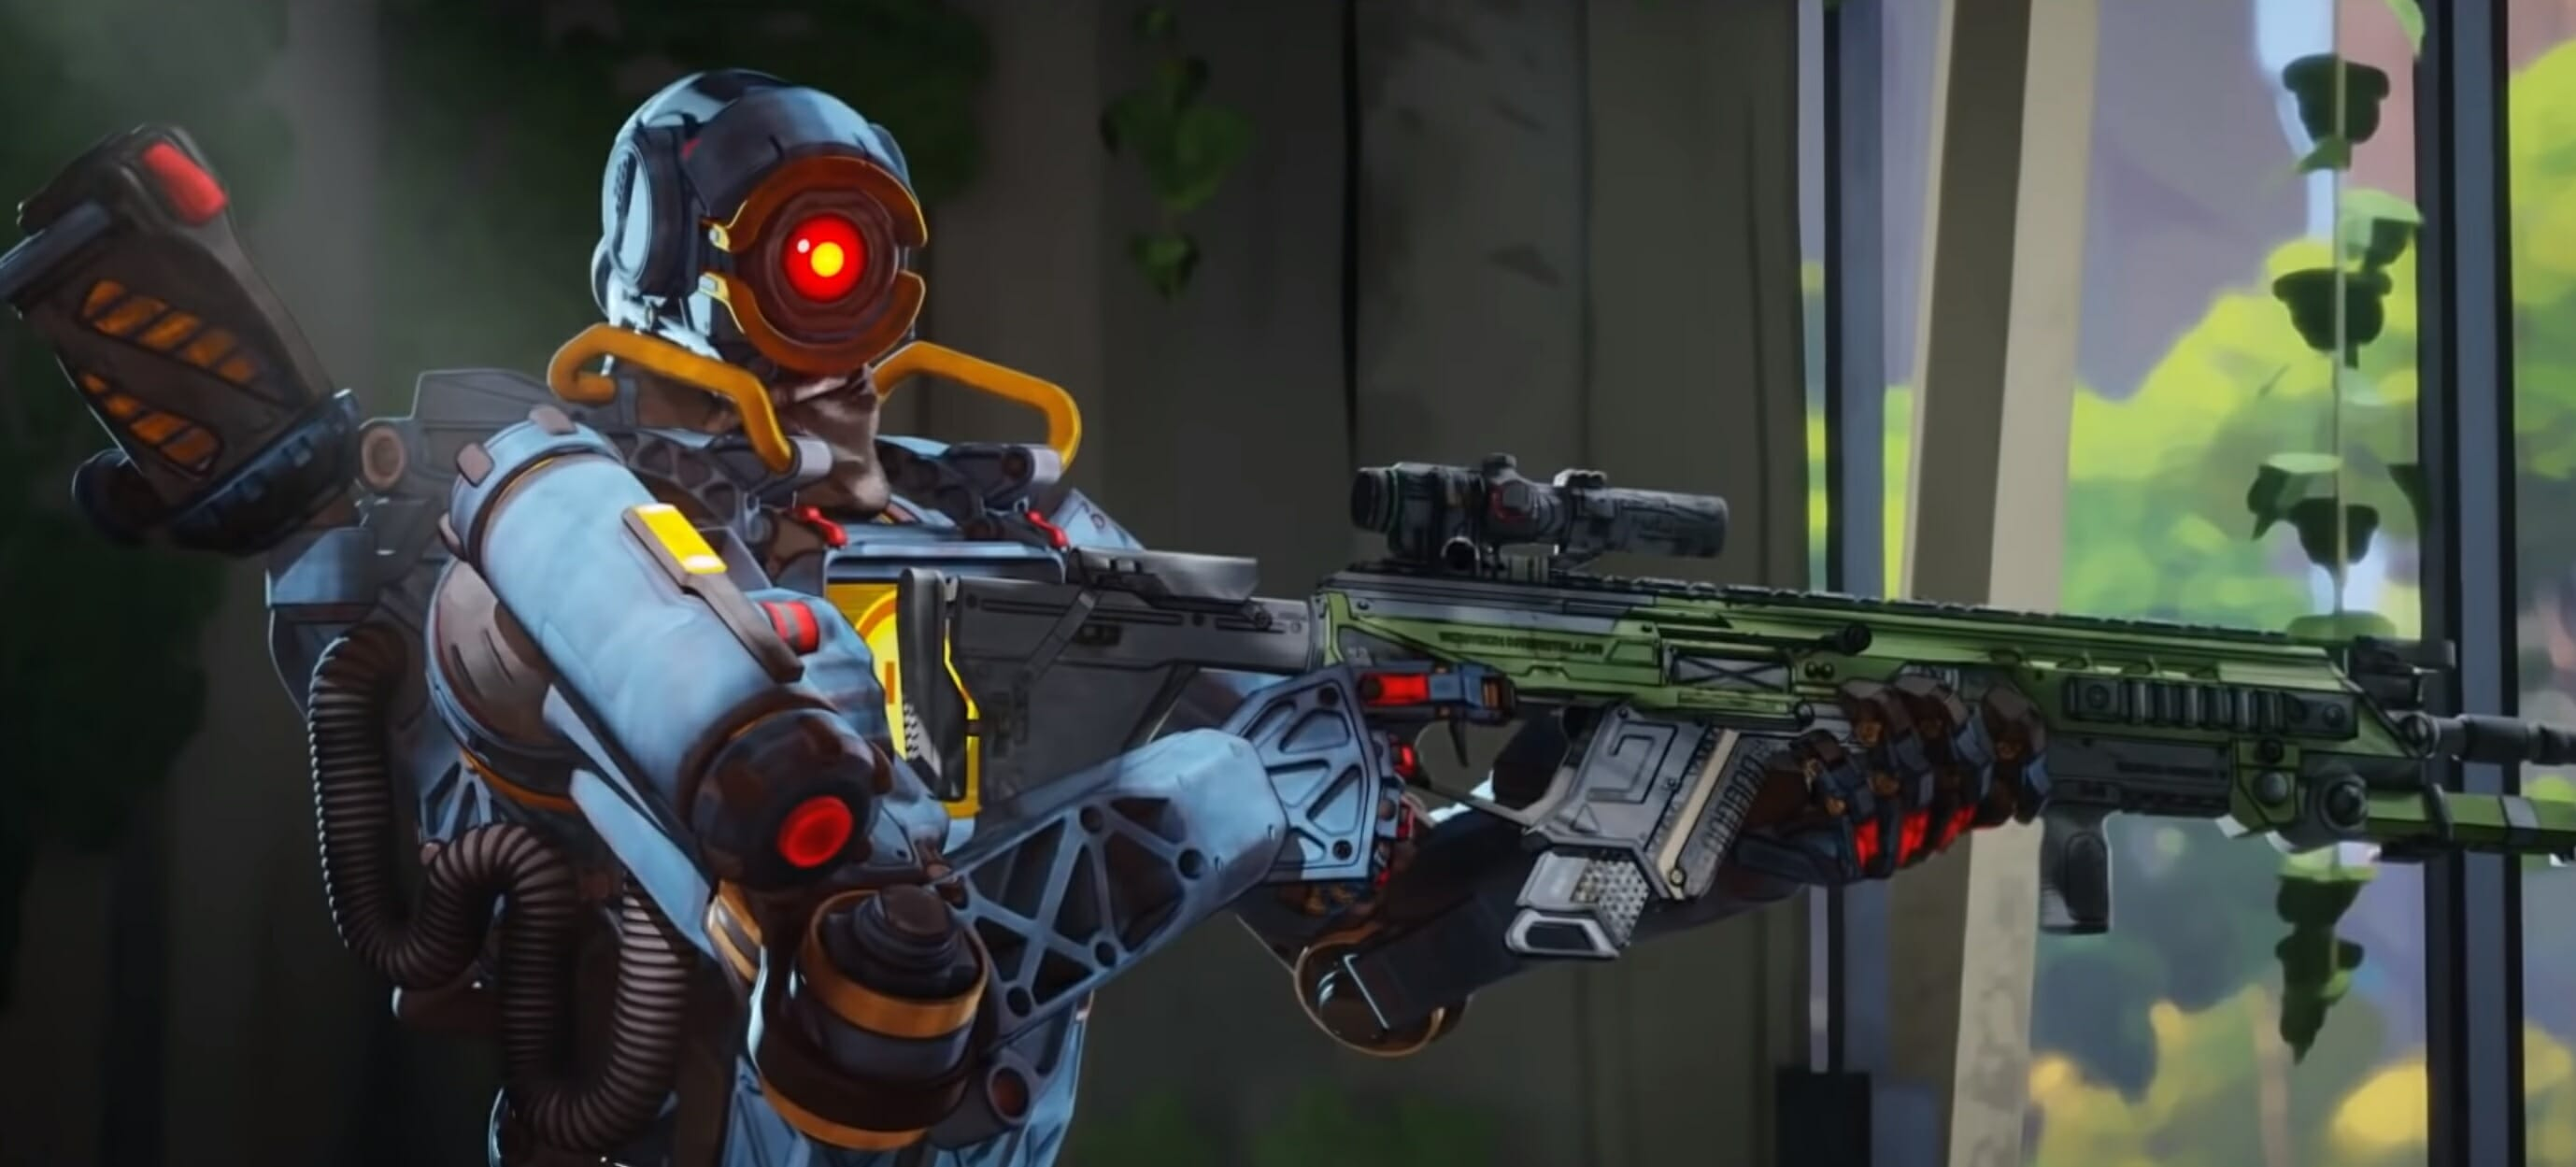 apex legends season 2 release date